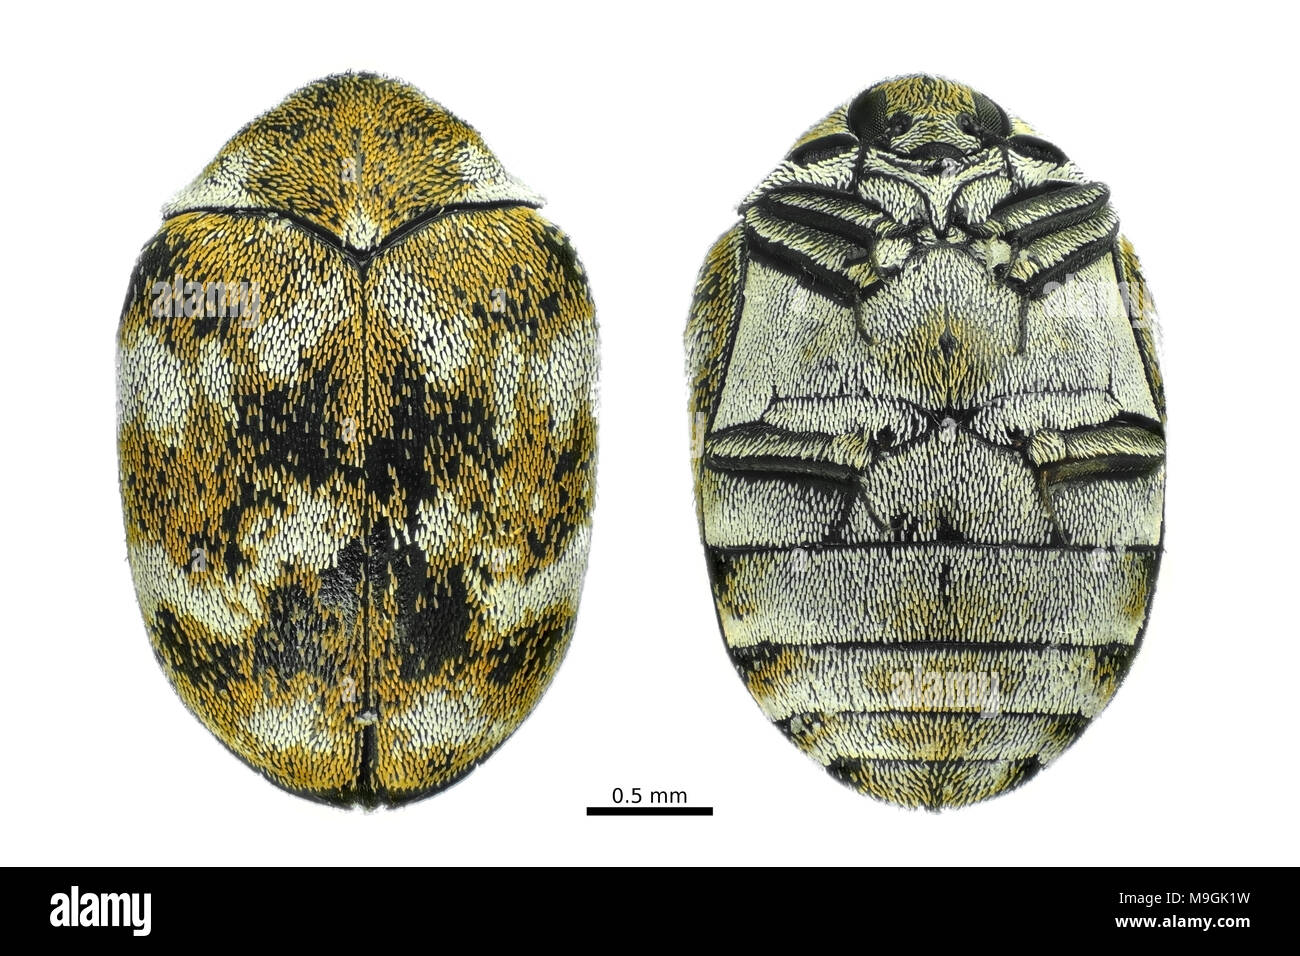 Light micrograph of a varied carpet beetle (Anthrenus verbasci), dorsal and ventral views isolated on white background - Stock Image